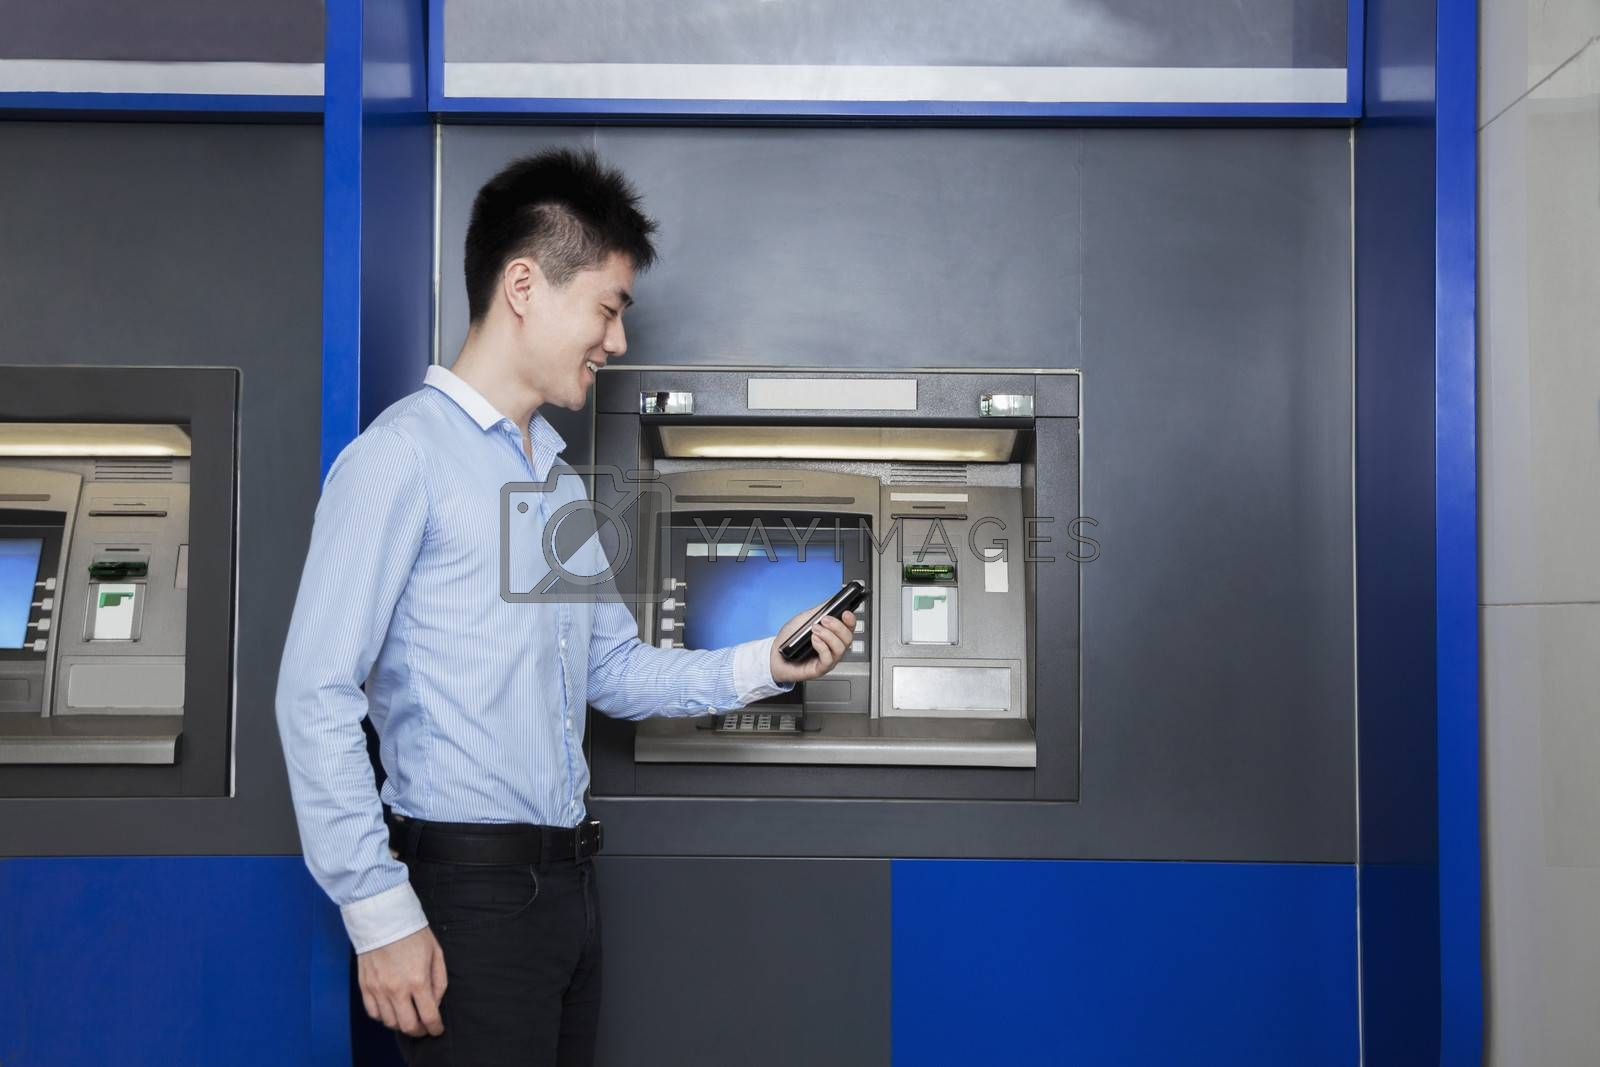 Smiling young businessman standing in front of an ATM and looking at his phone by XiXinXing